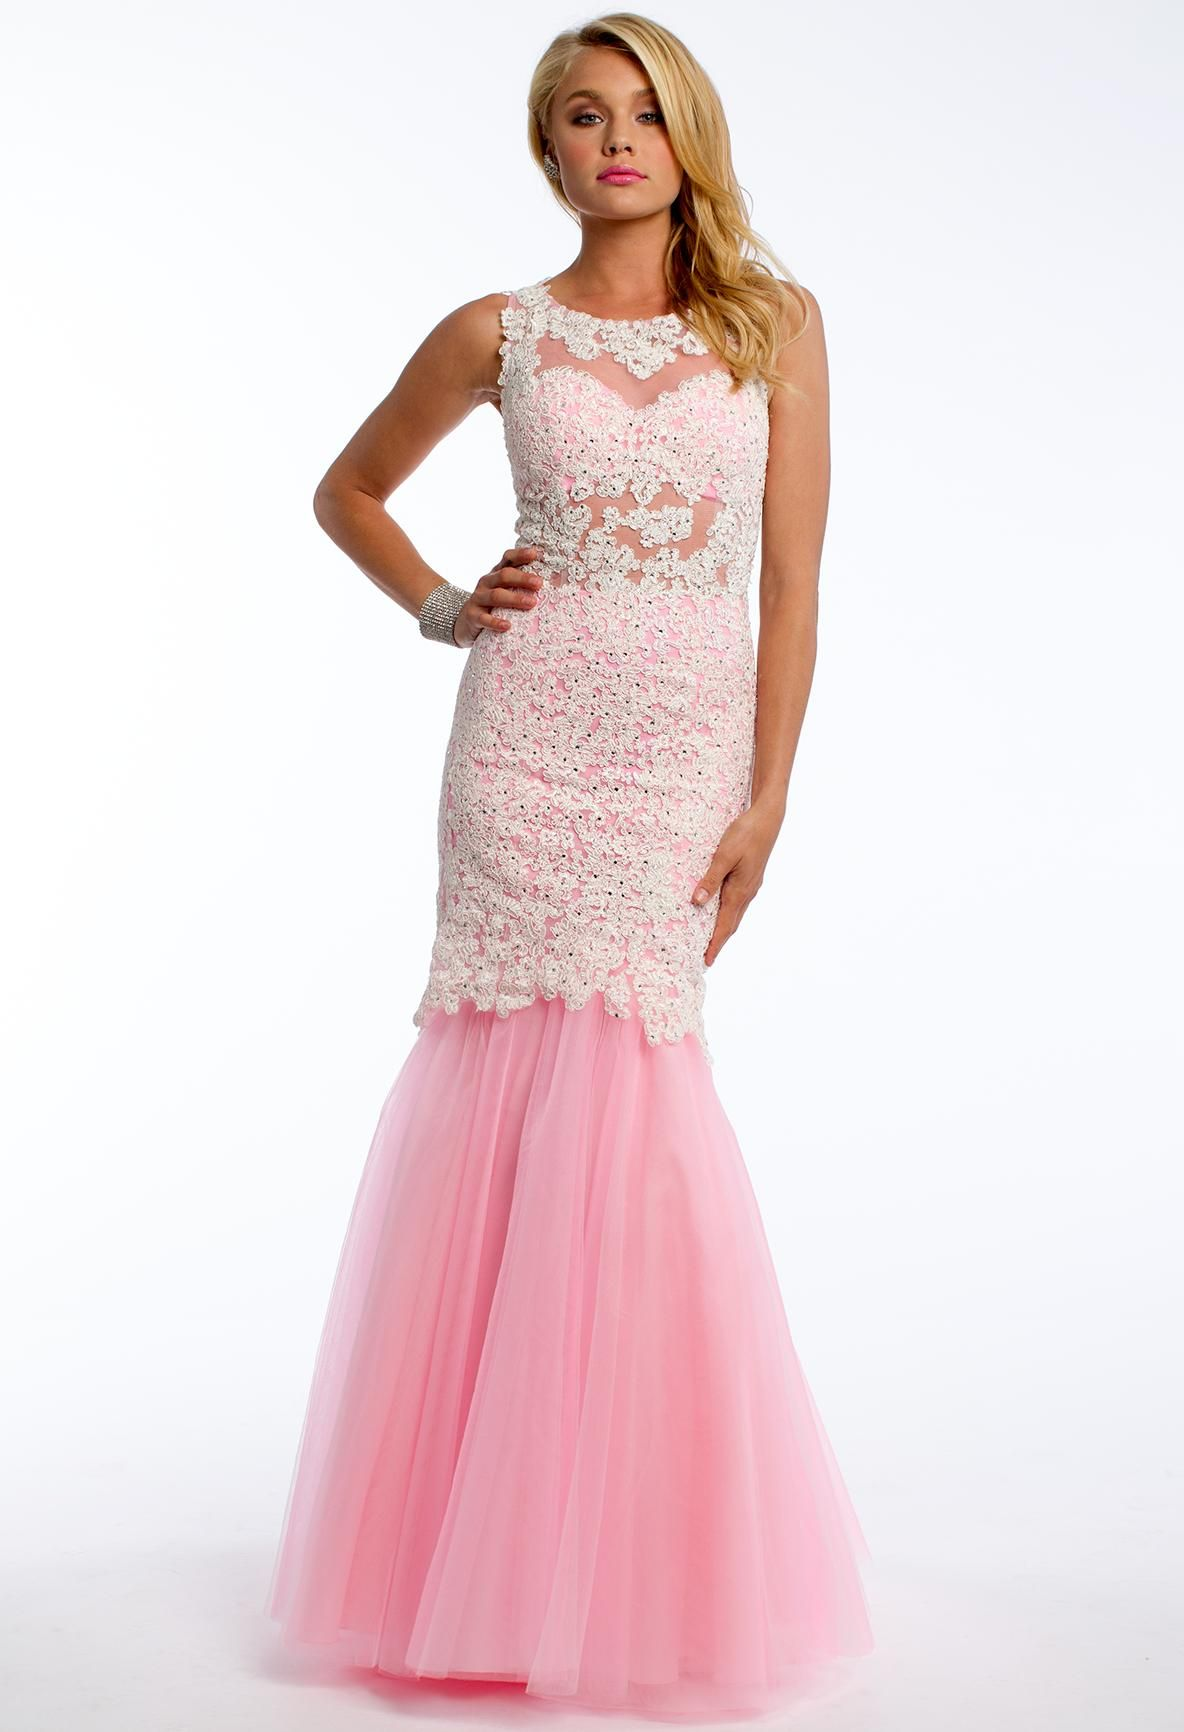 Pink Lace Prom Dress with a Tulle Mermaid Skirt #CLVprom ...